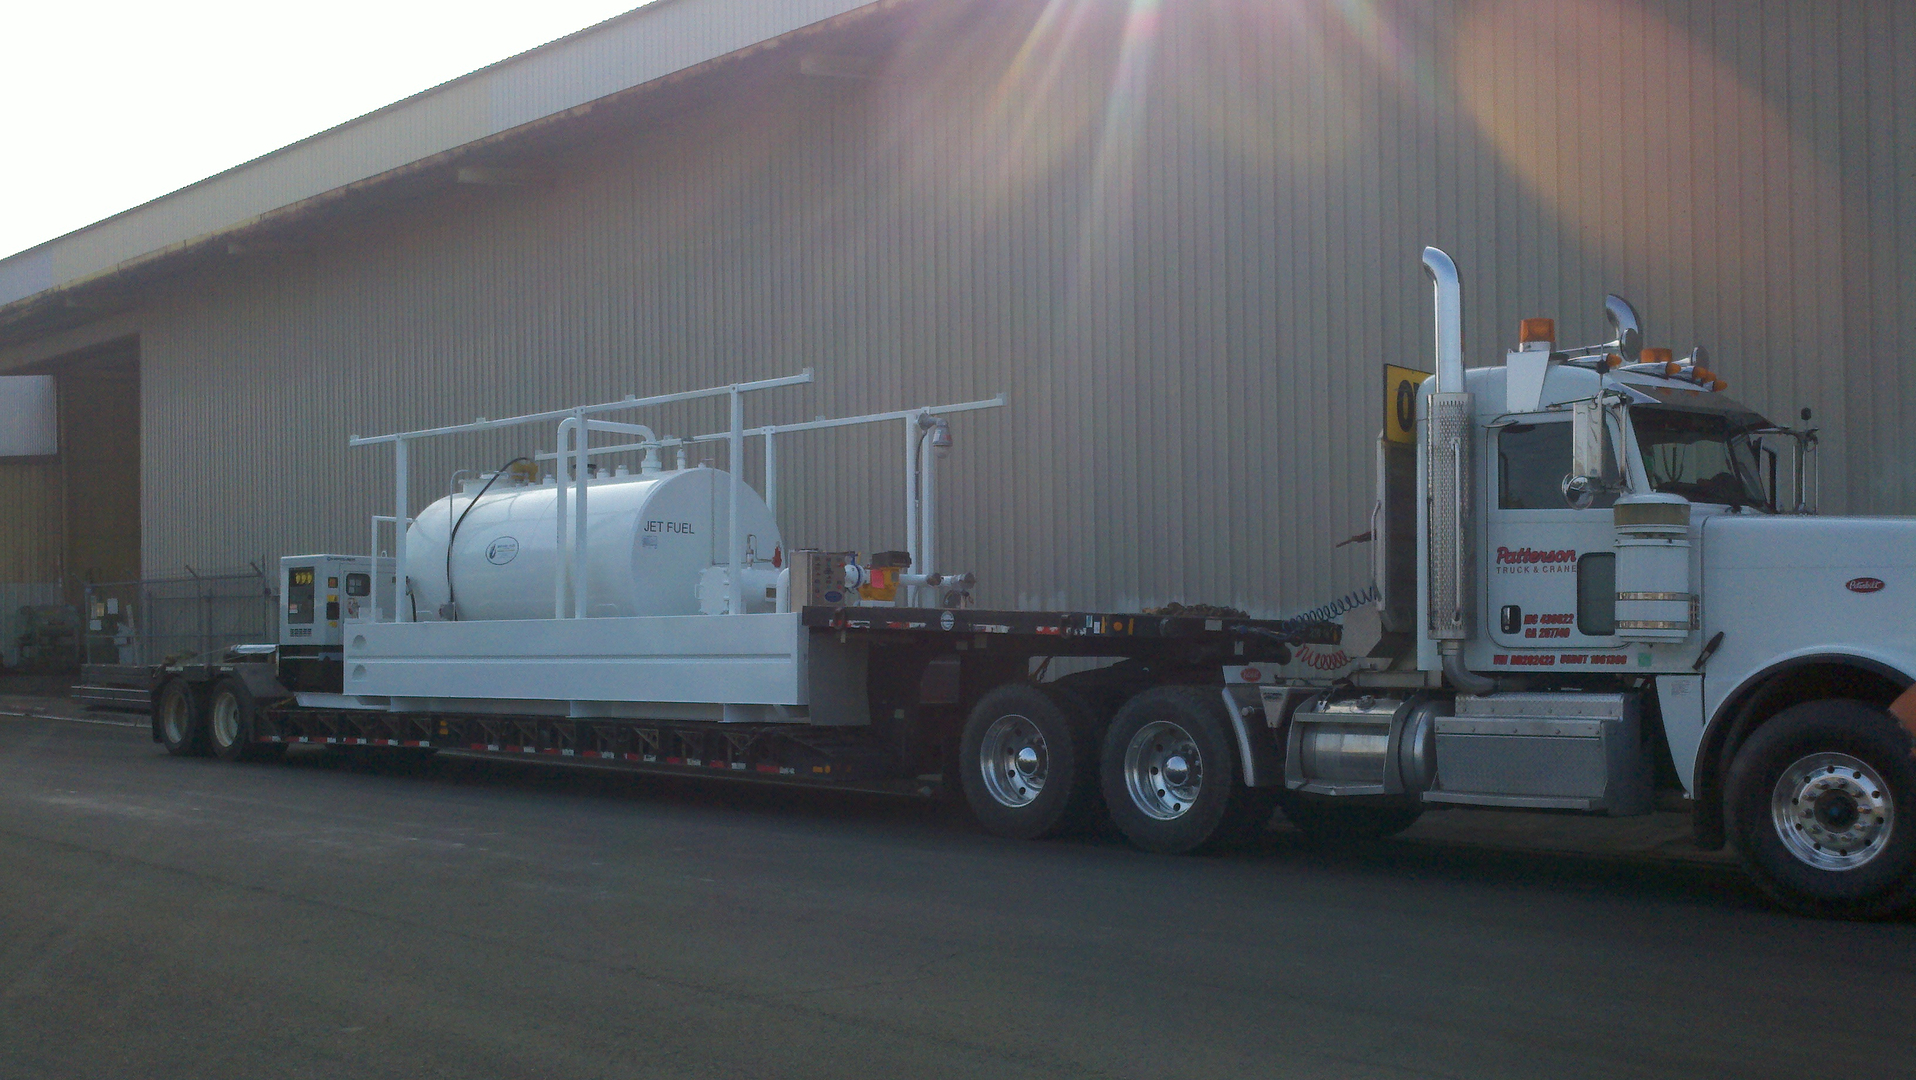 Fuel Dispensing Systems Bryant Power Jet A Filter Truck Completes Ul 142 Fueling System For Army Corps Of Engineers